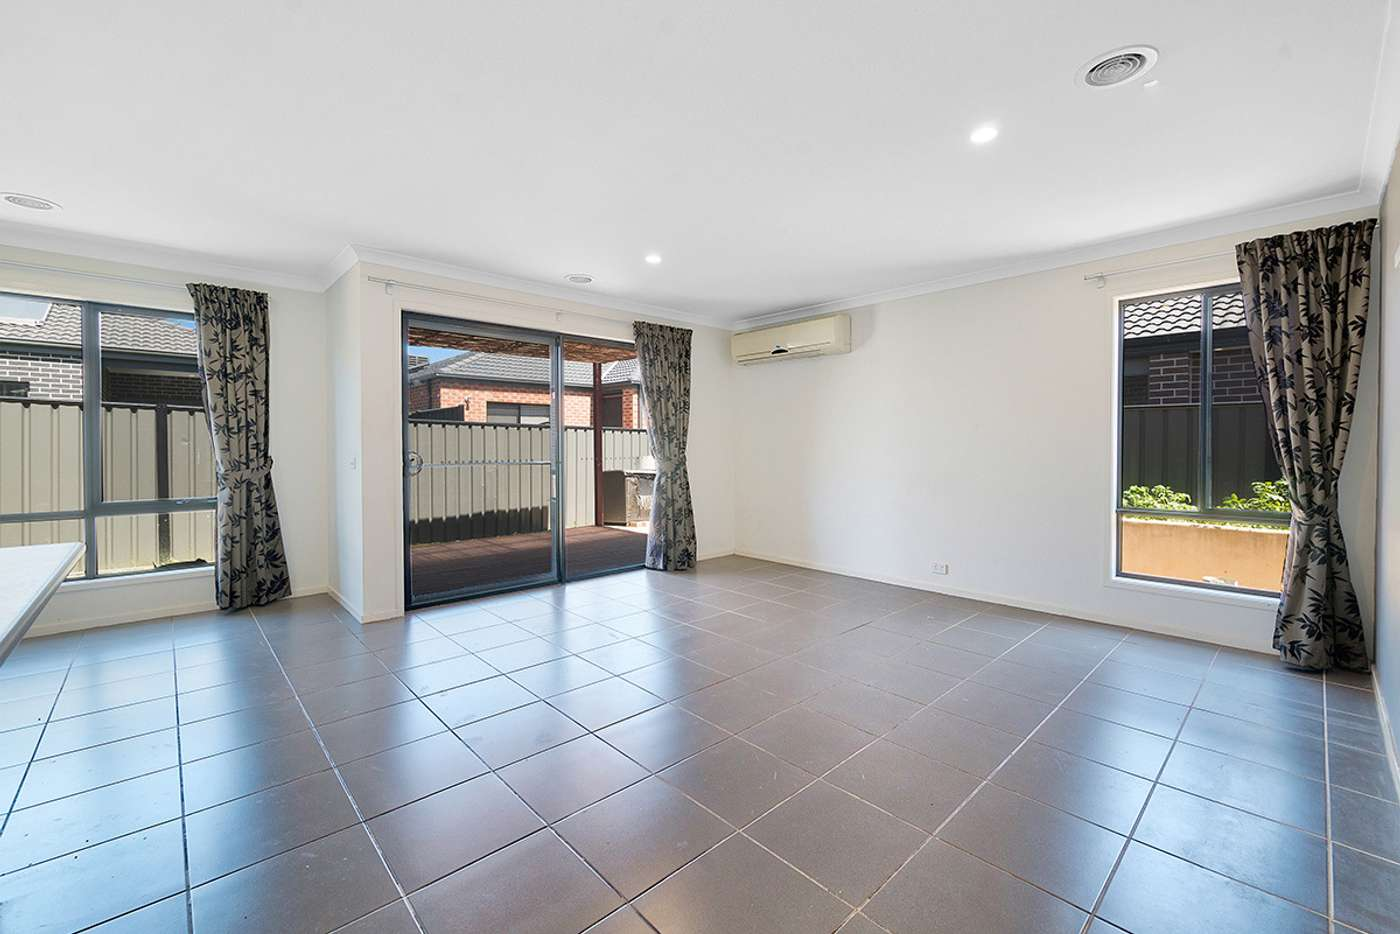 Sixth view of Homely house listing, 16 Flueve Rise, Clyde North VIC 3978